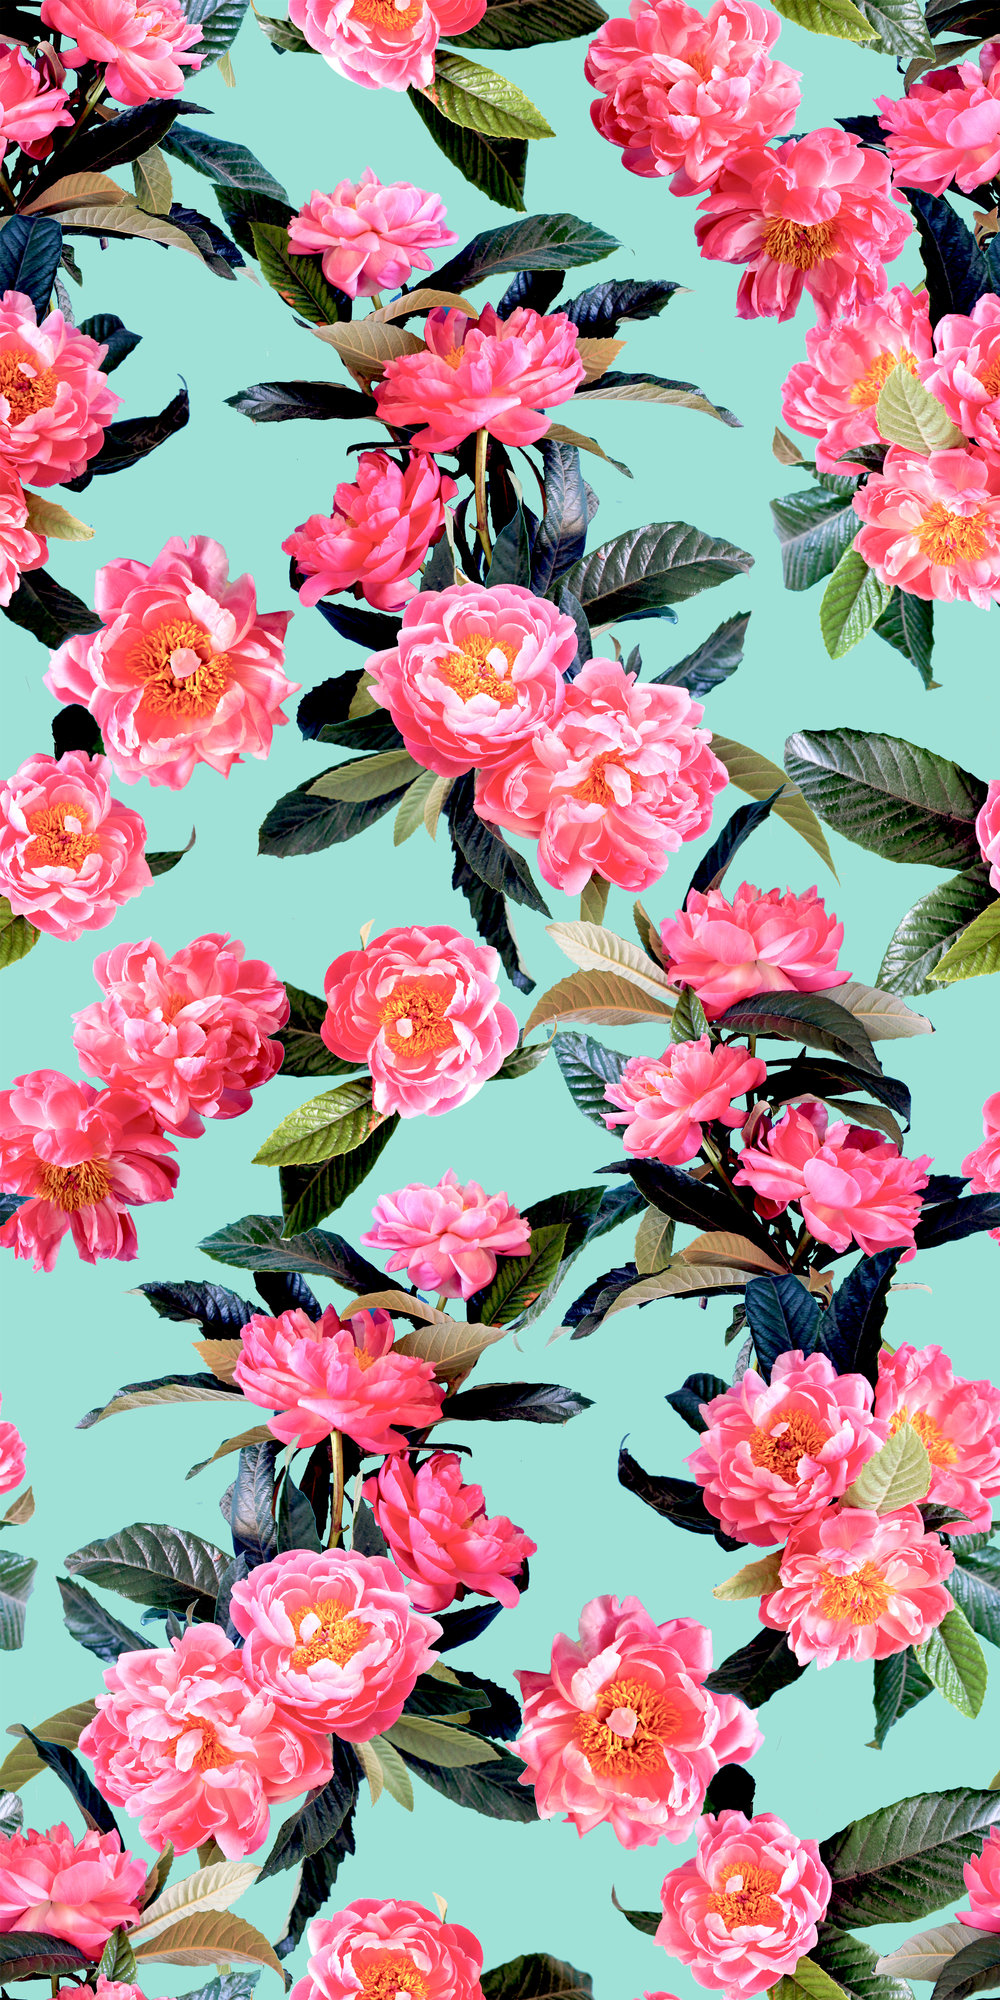 Peony-Play-Removable_TILE-for-print_turquoise_WEB.jpg